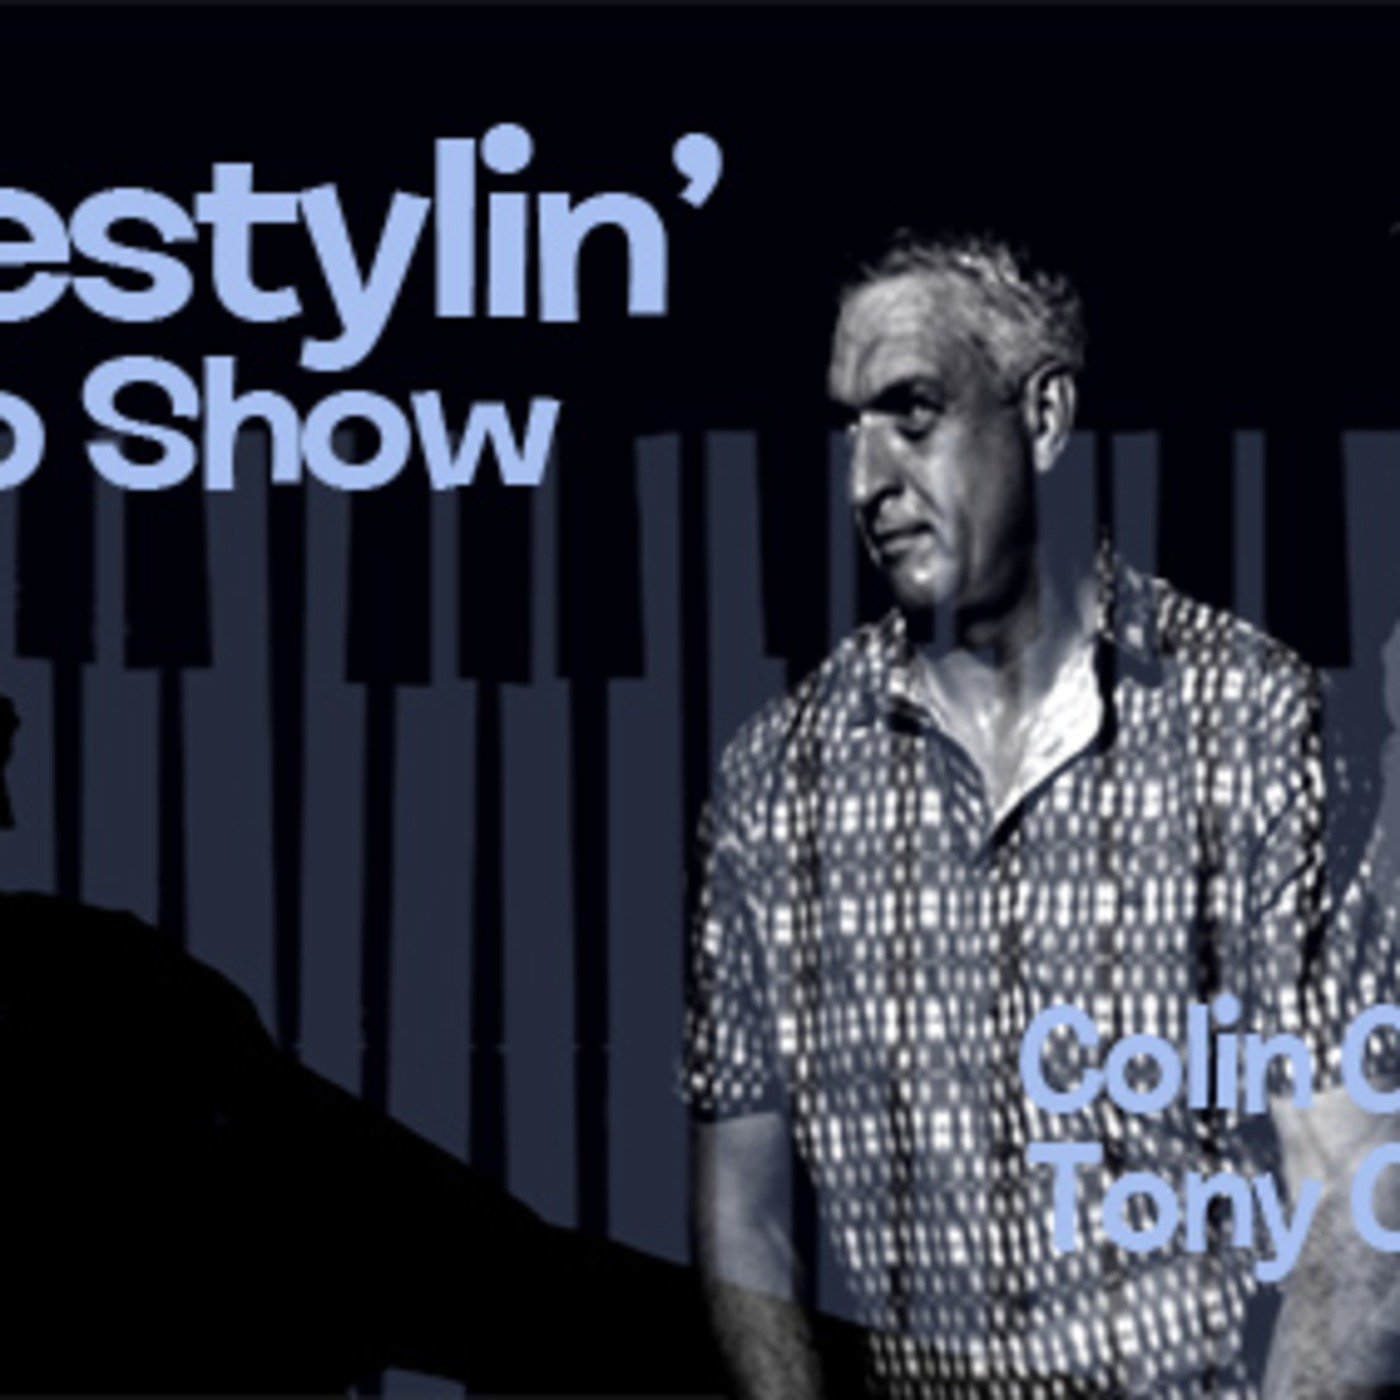 Freestylin\' Show Colin Curtis & Tony Cooney November Edition 2013 MP3